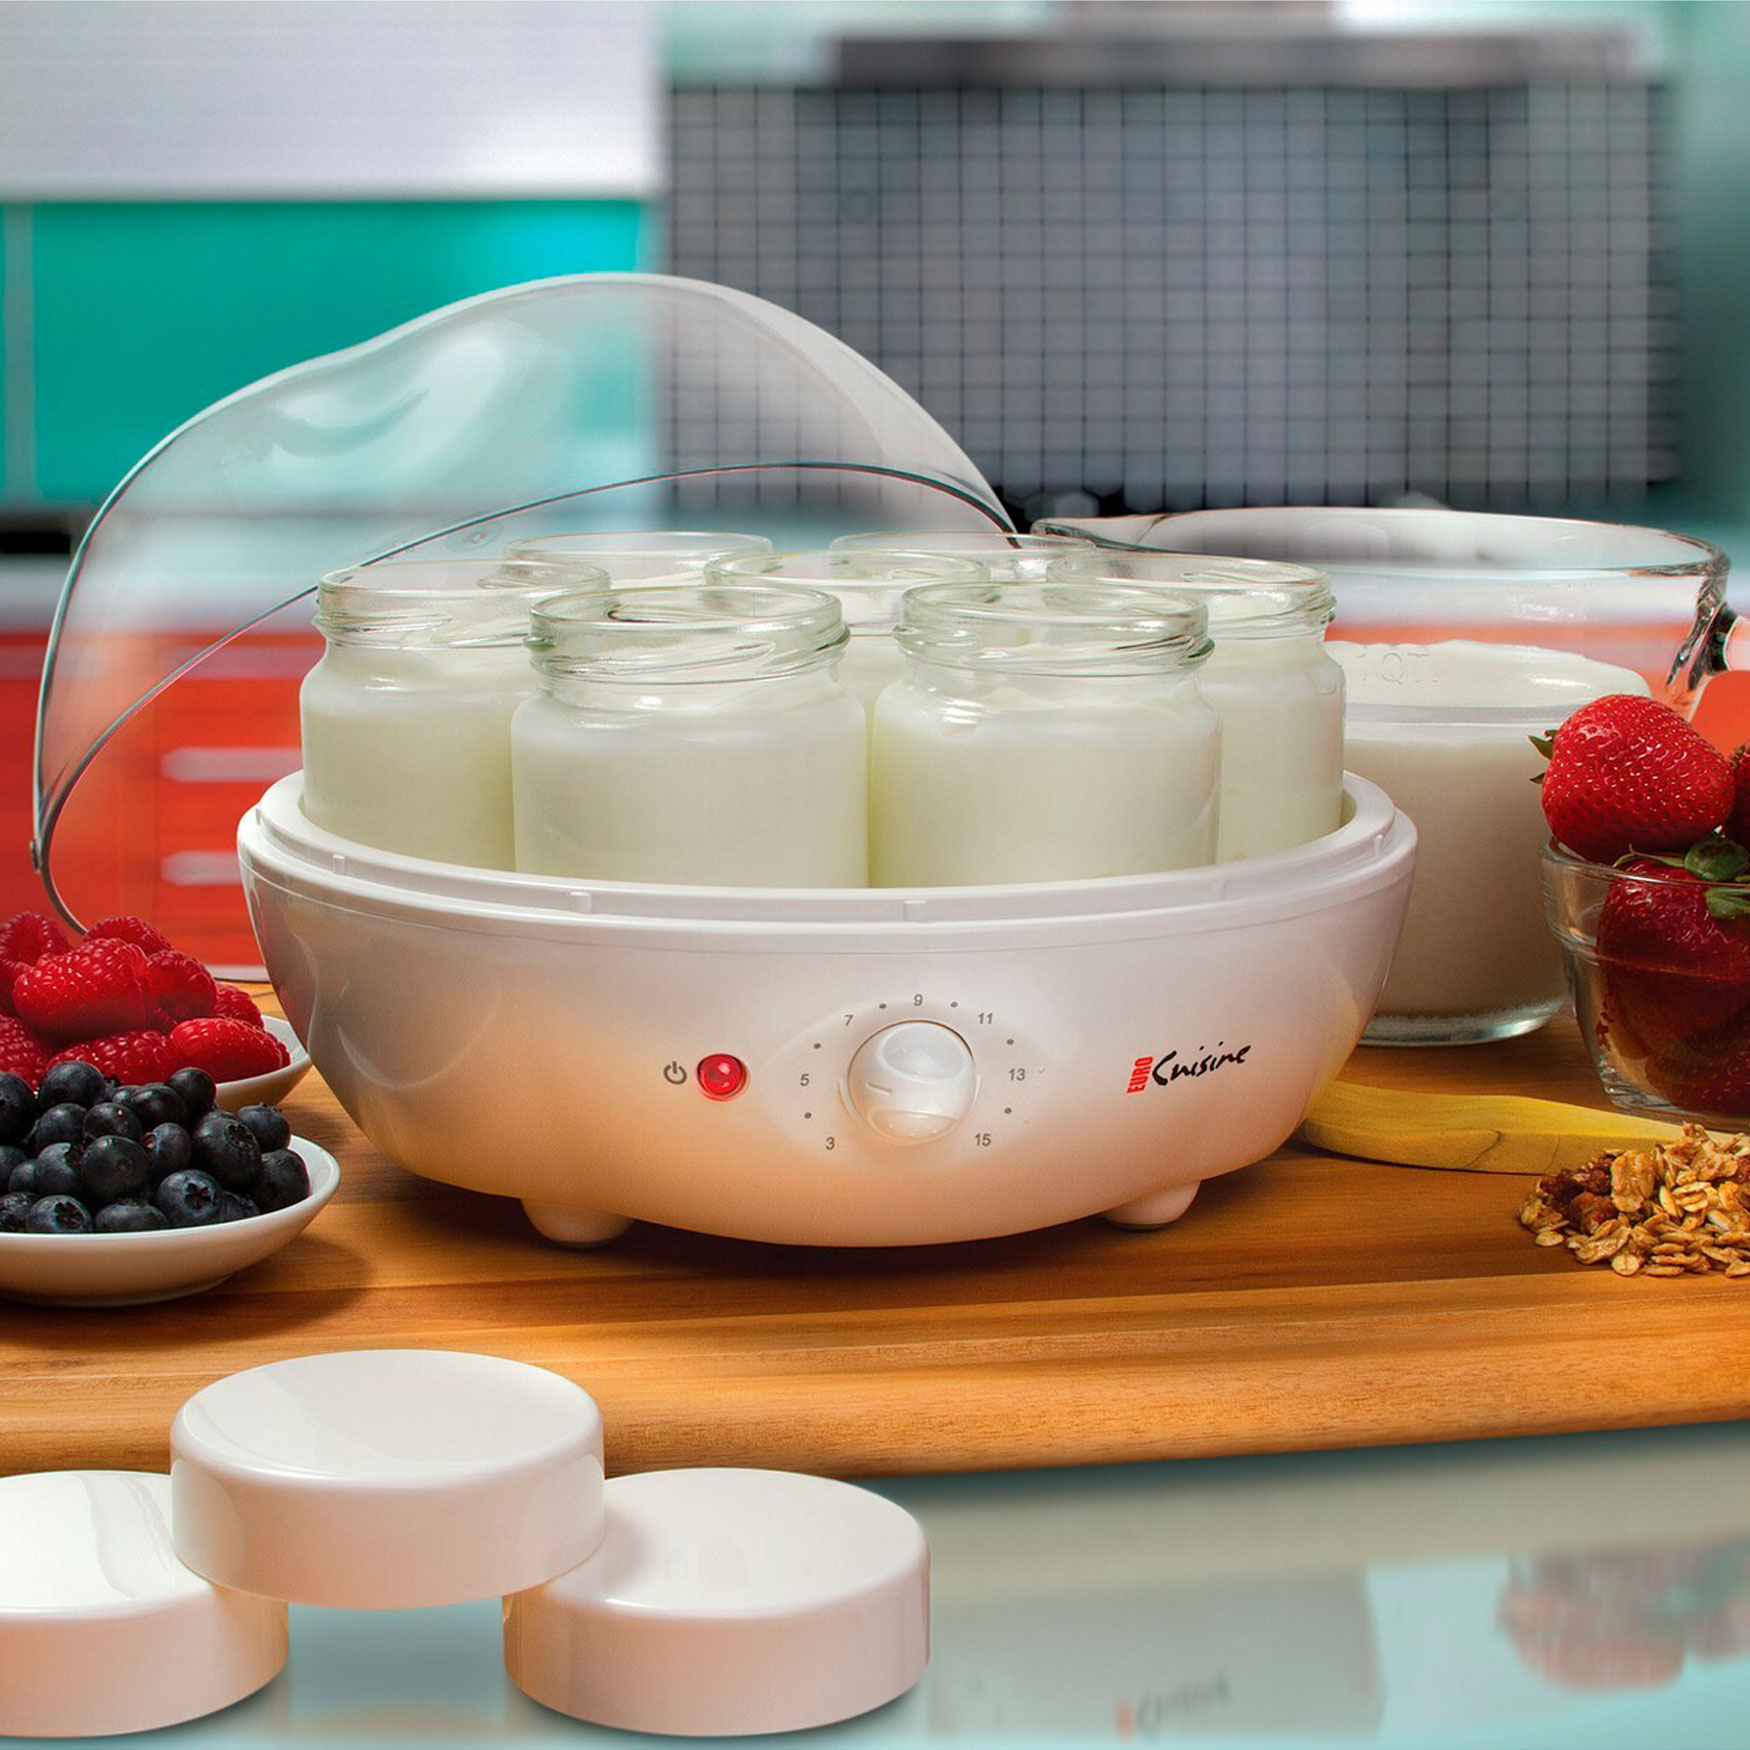 Euro Cuisine Electric Automatic Yogurt Maker with 7 Glass Jars, WHITE